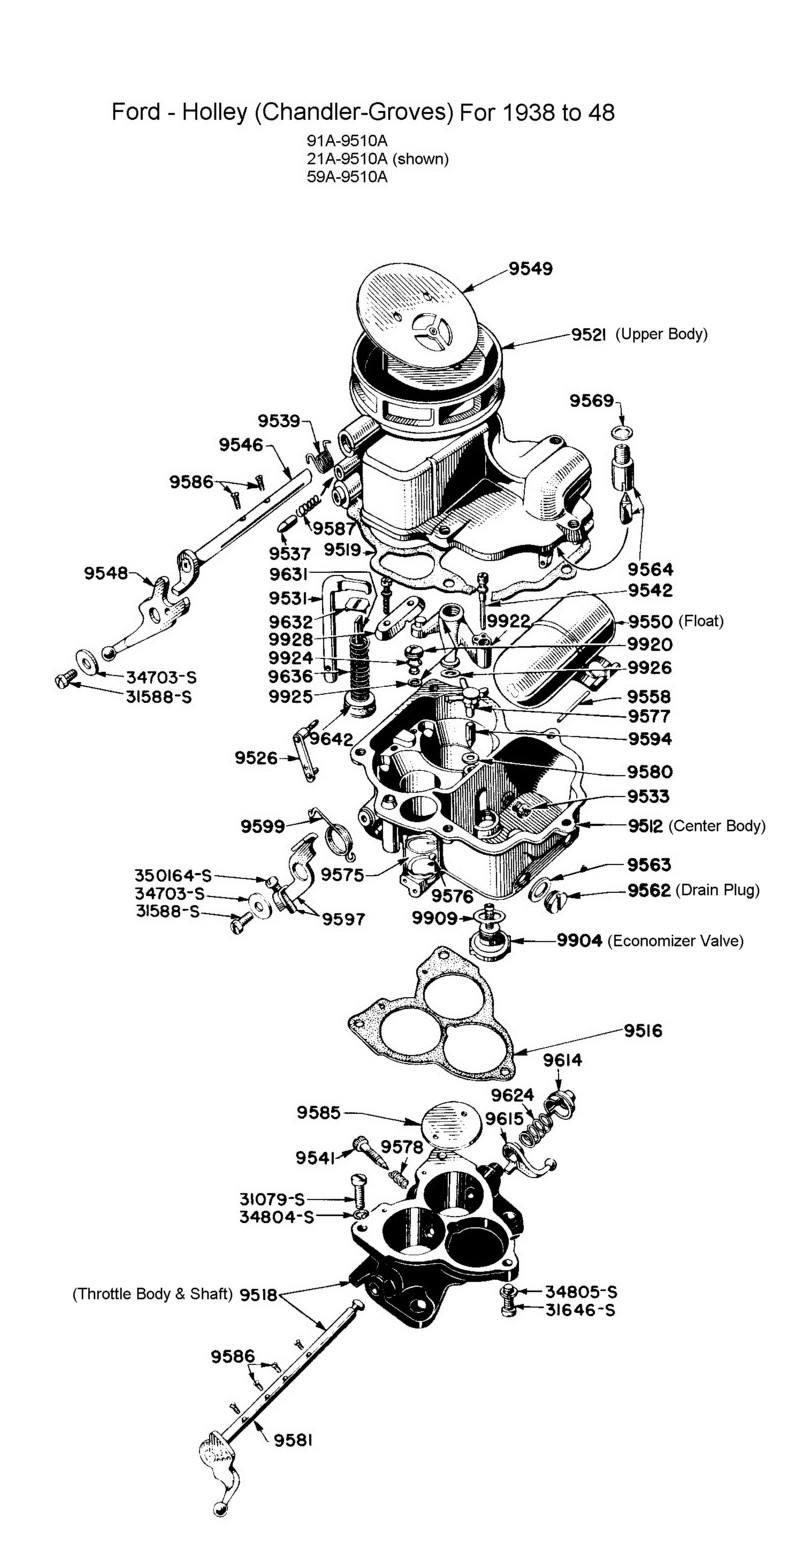 Flathead Parts Drawings-Fuel System